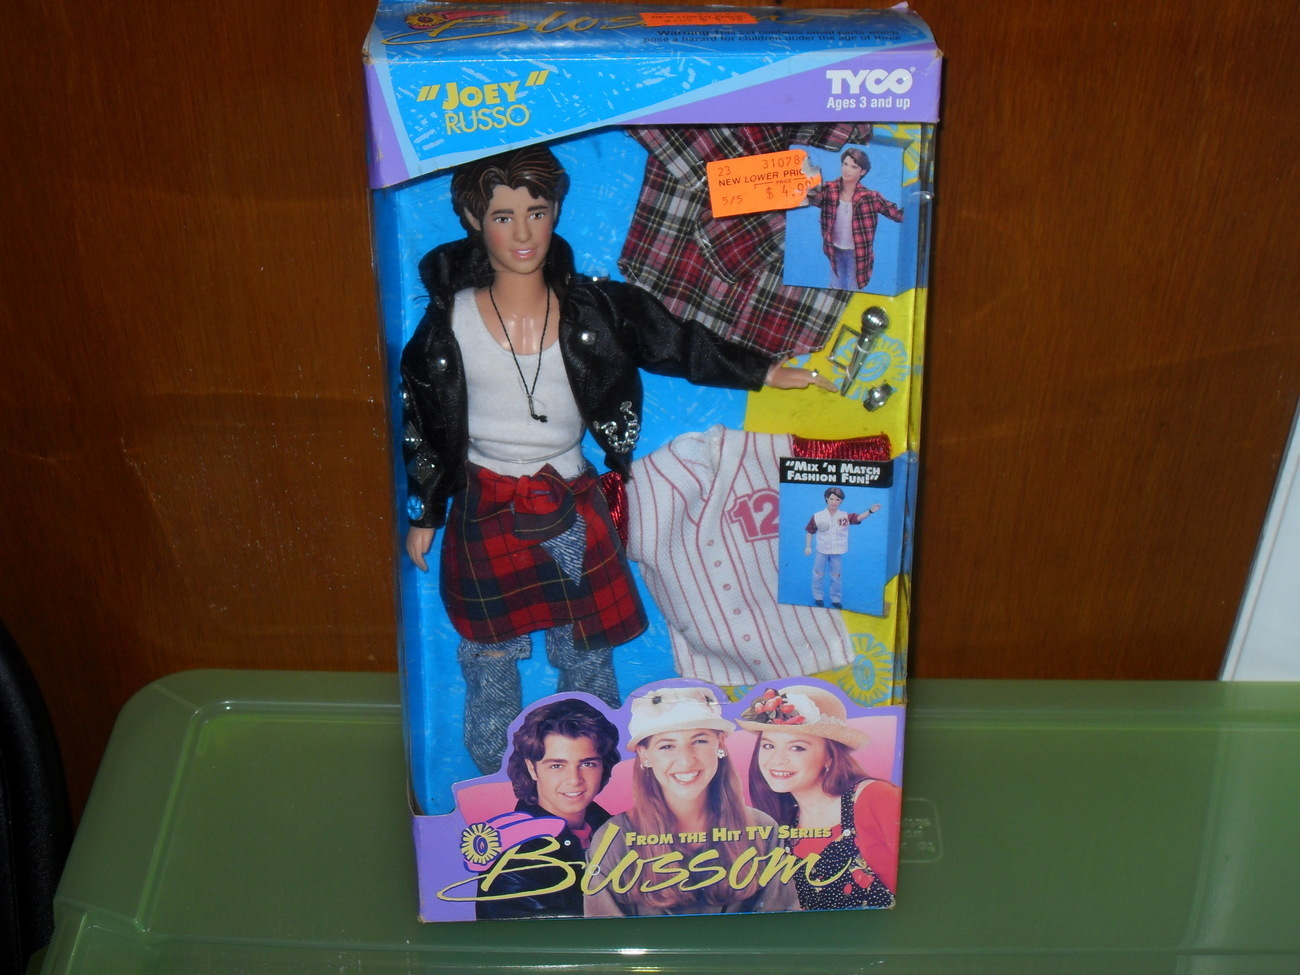 1993 Blossom  Joey Russo Doll in the Box